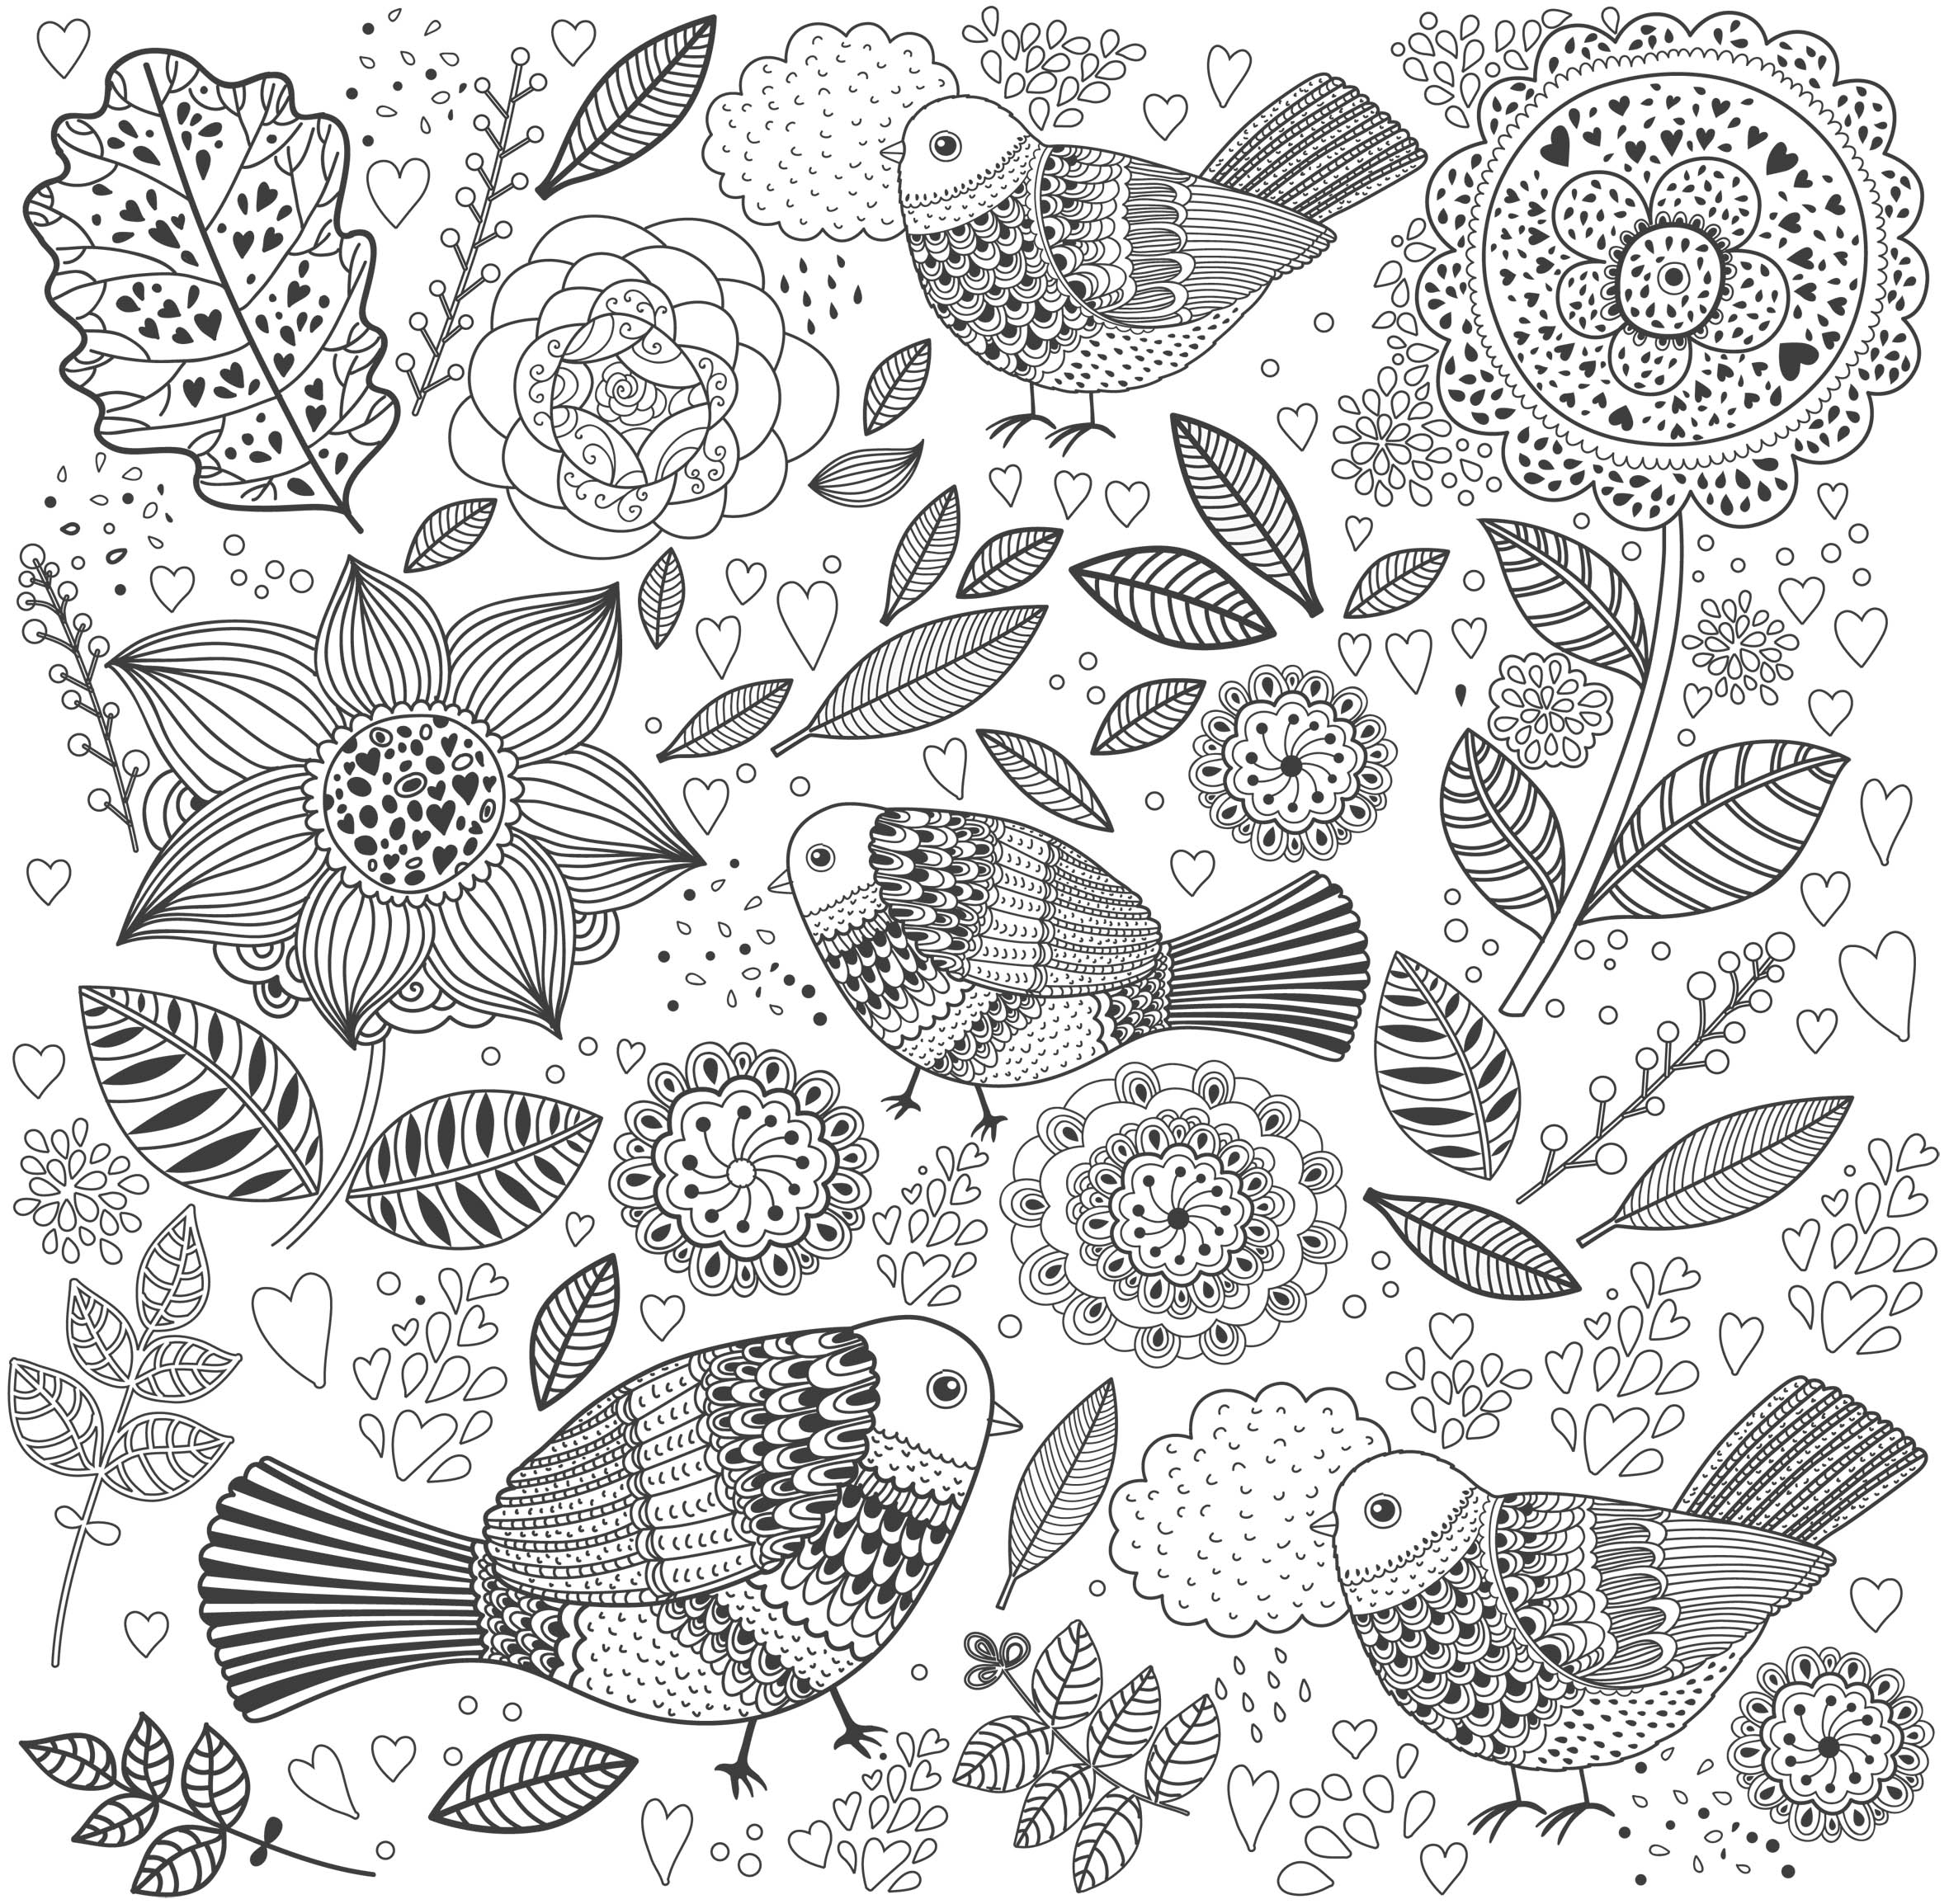 131 Dessins De Coloriage Anti Stress à Imprimer